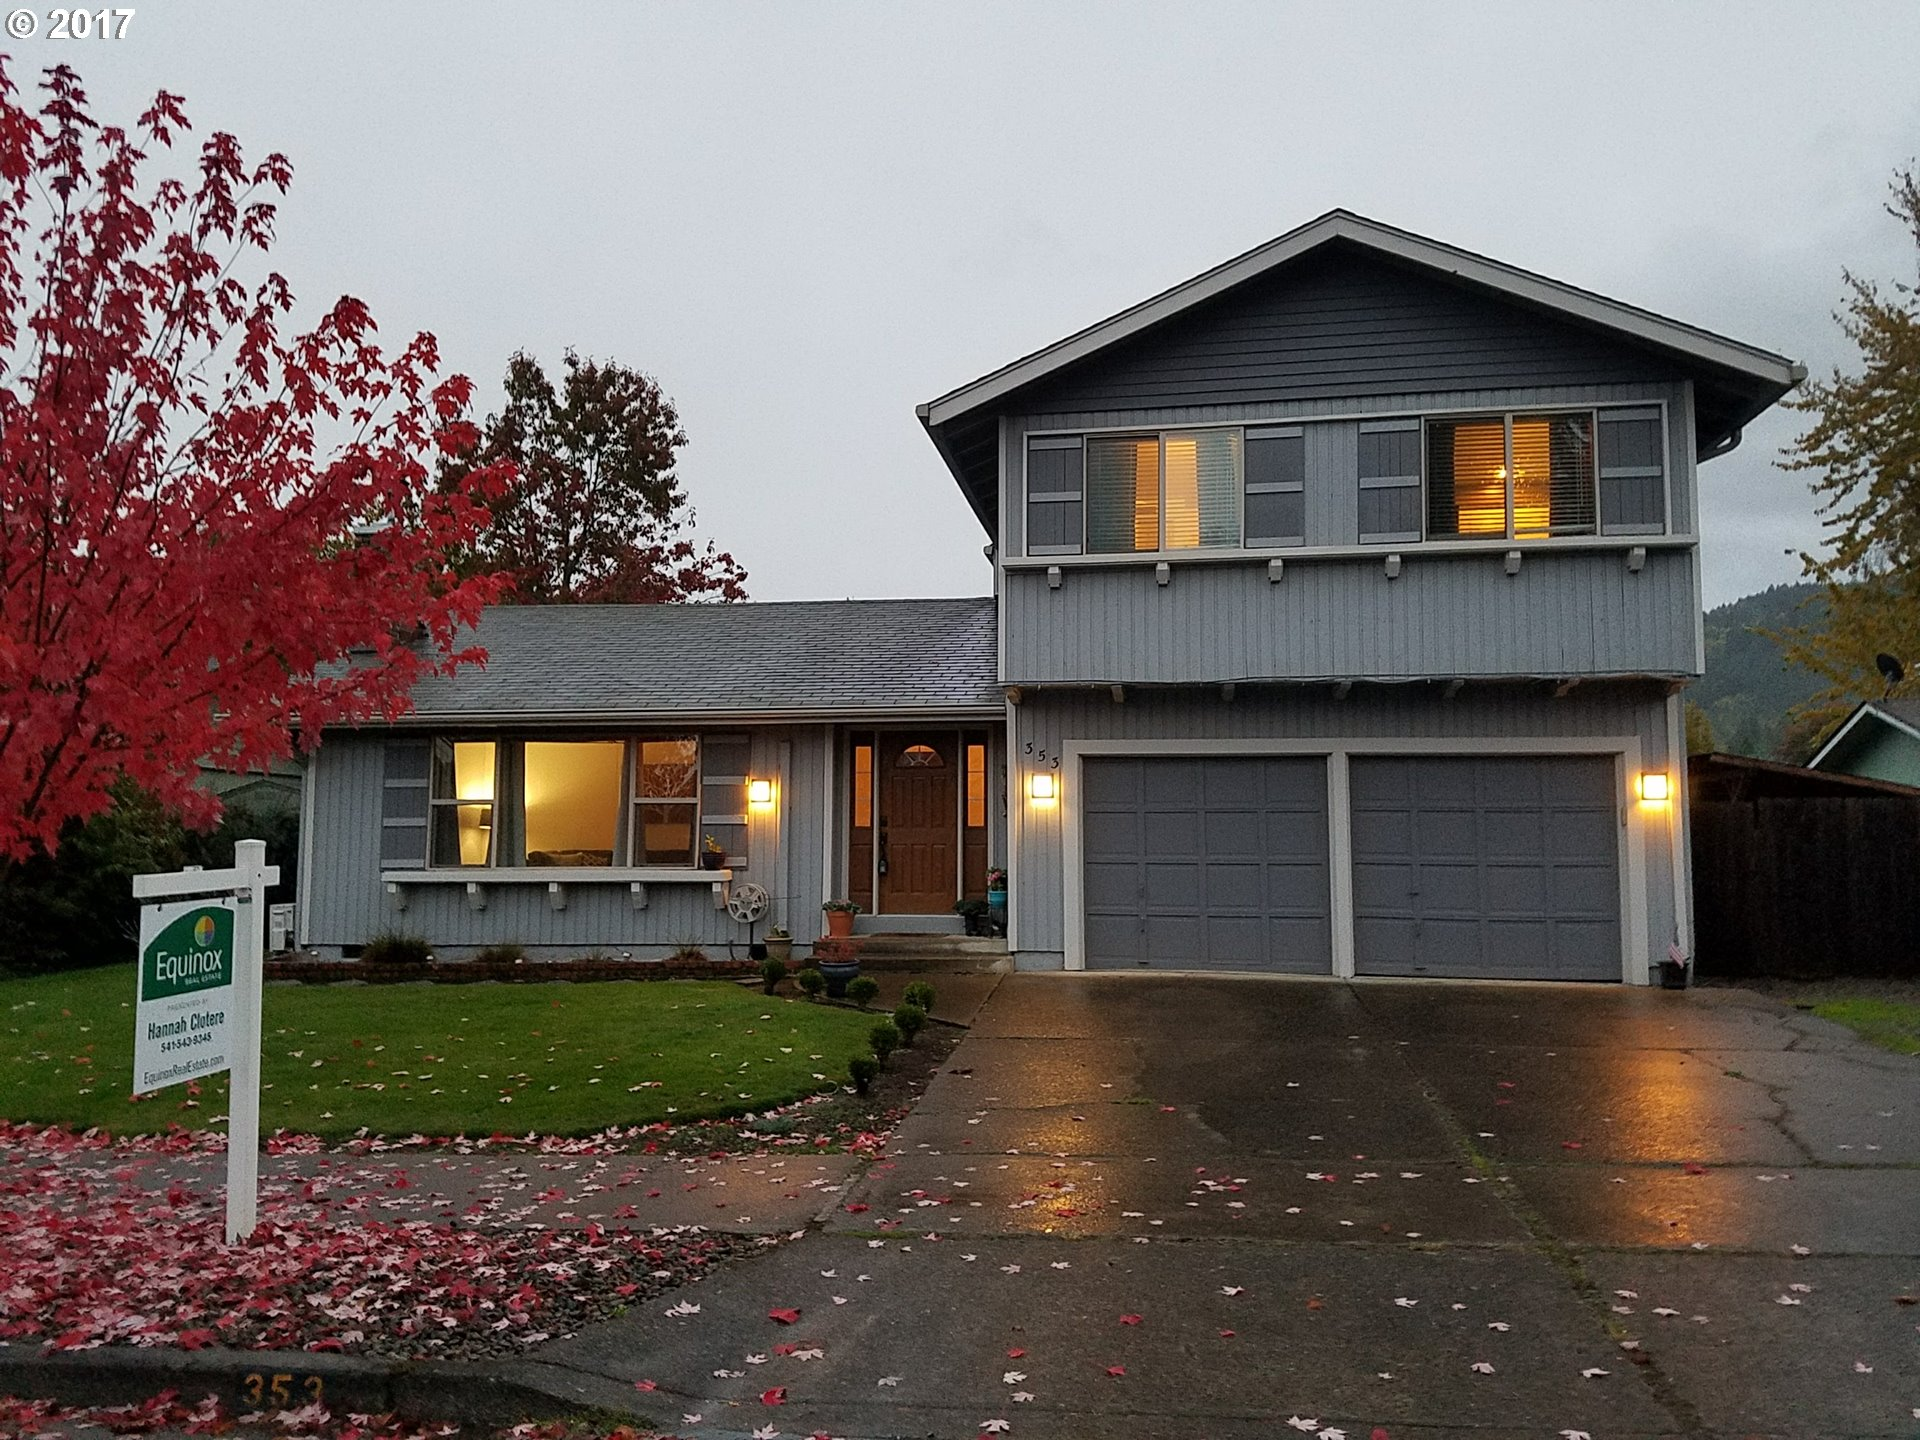 353 72ND ST, Springfield OR 97478